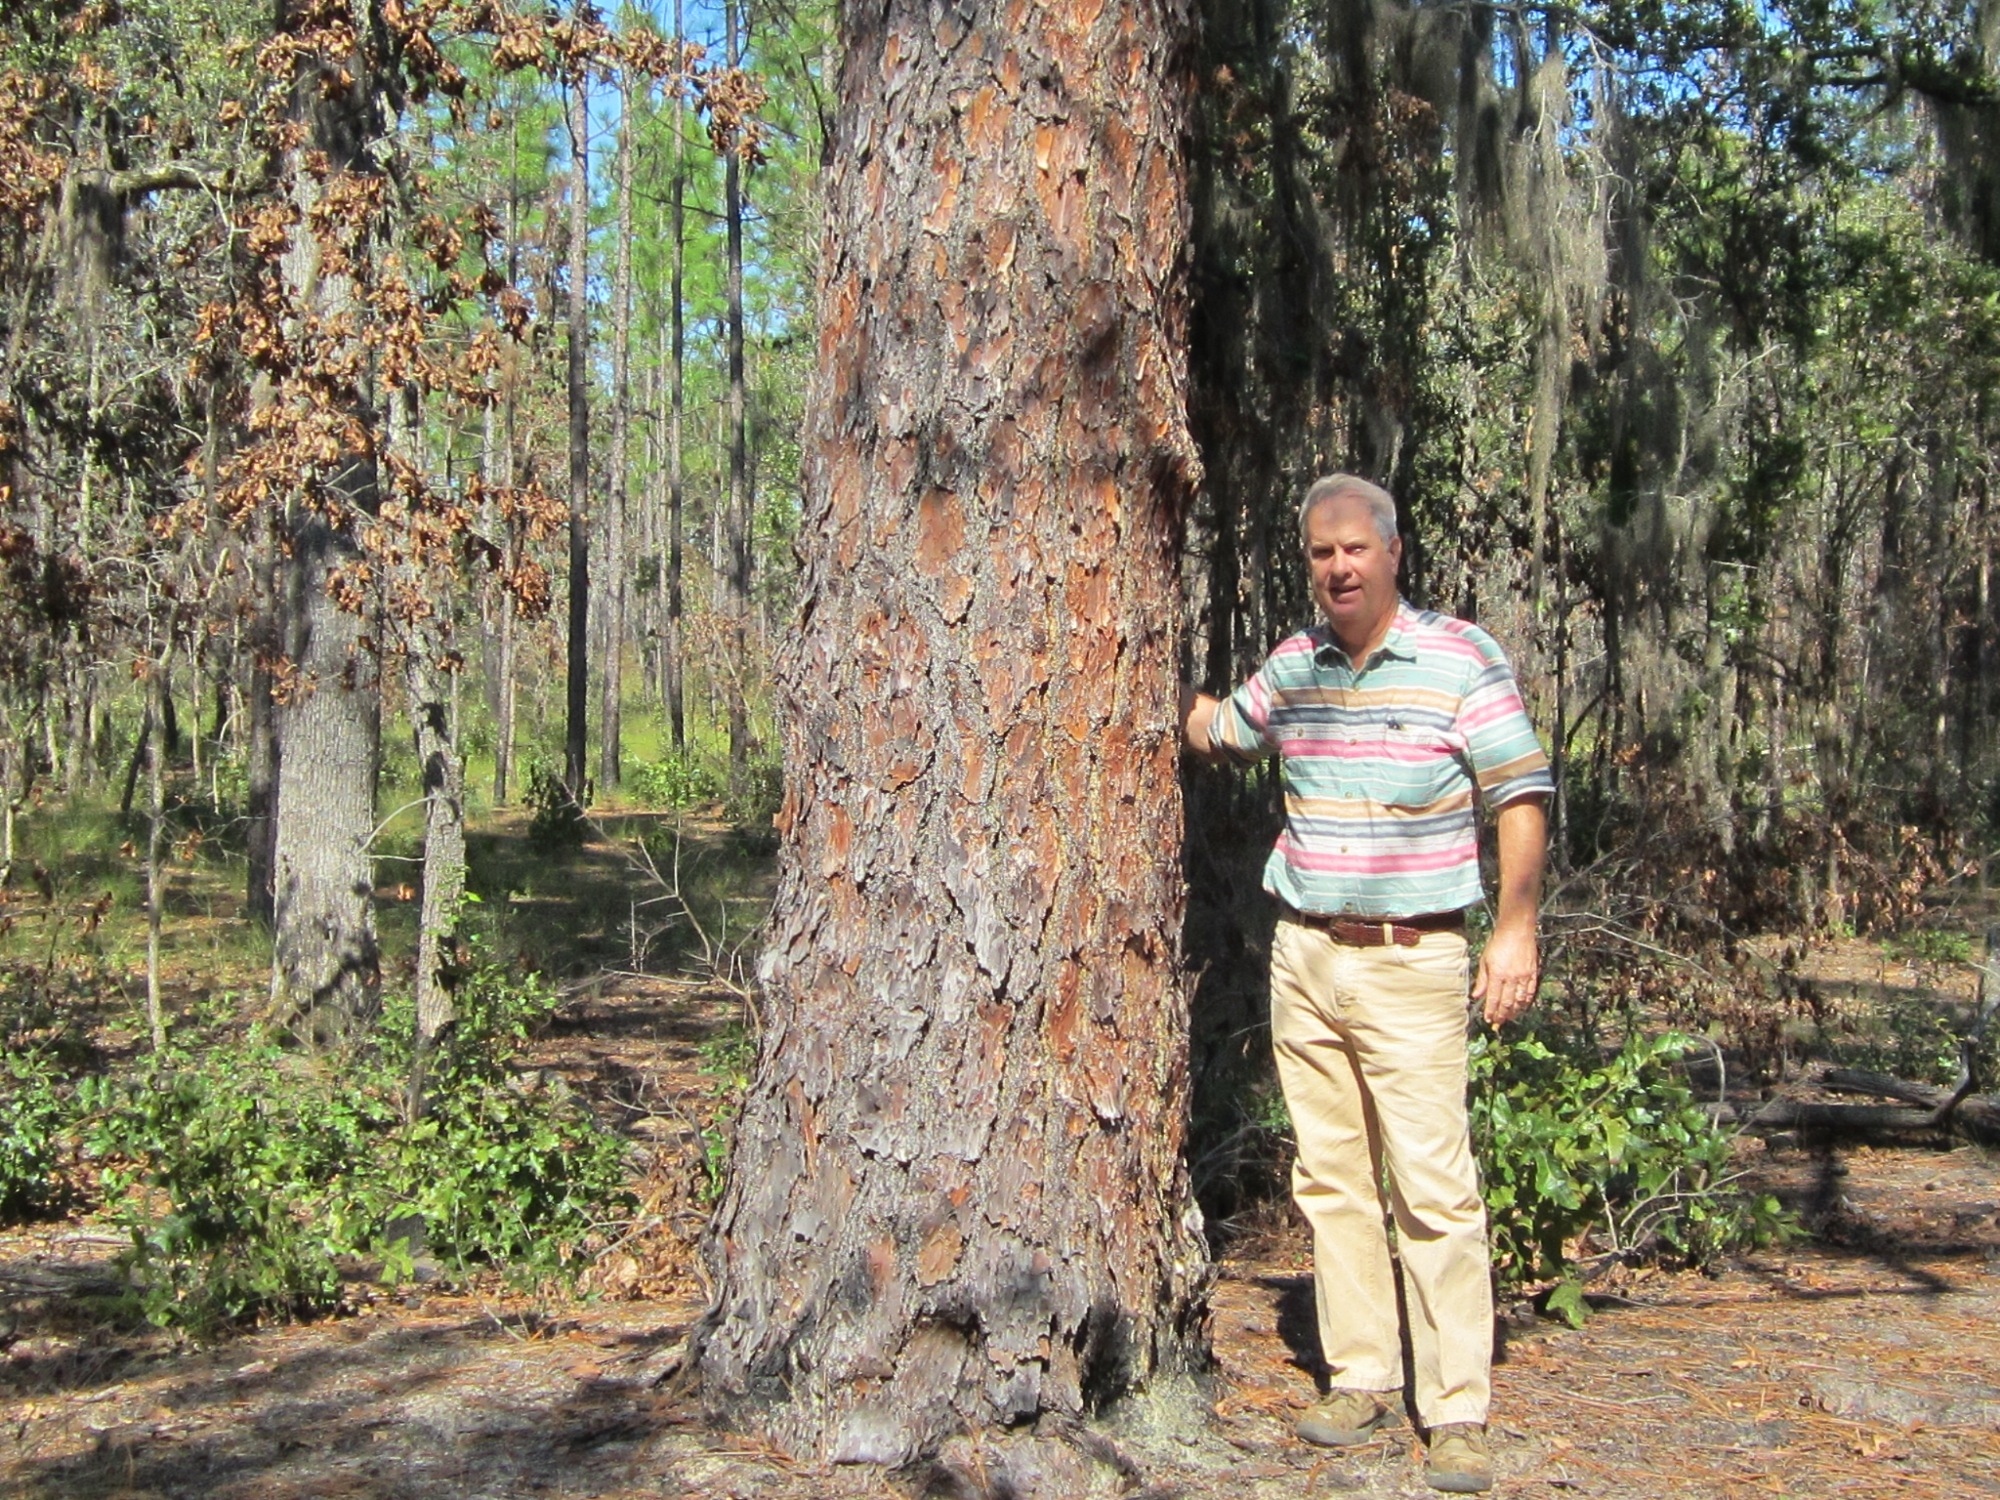 Reese Thompson, a Georgia landowner, is using conservation to improve longleaf pine forests on his l